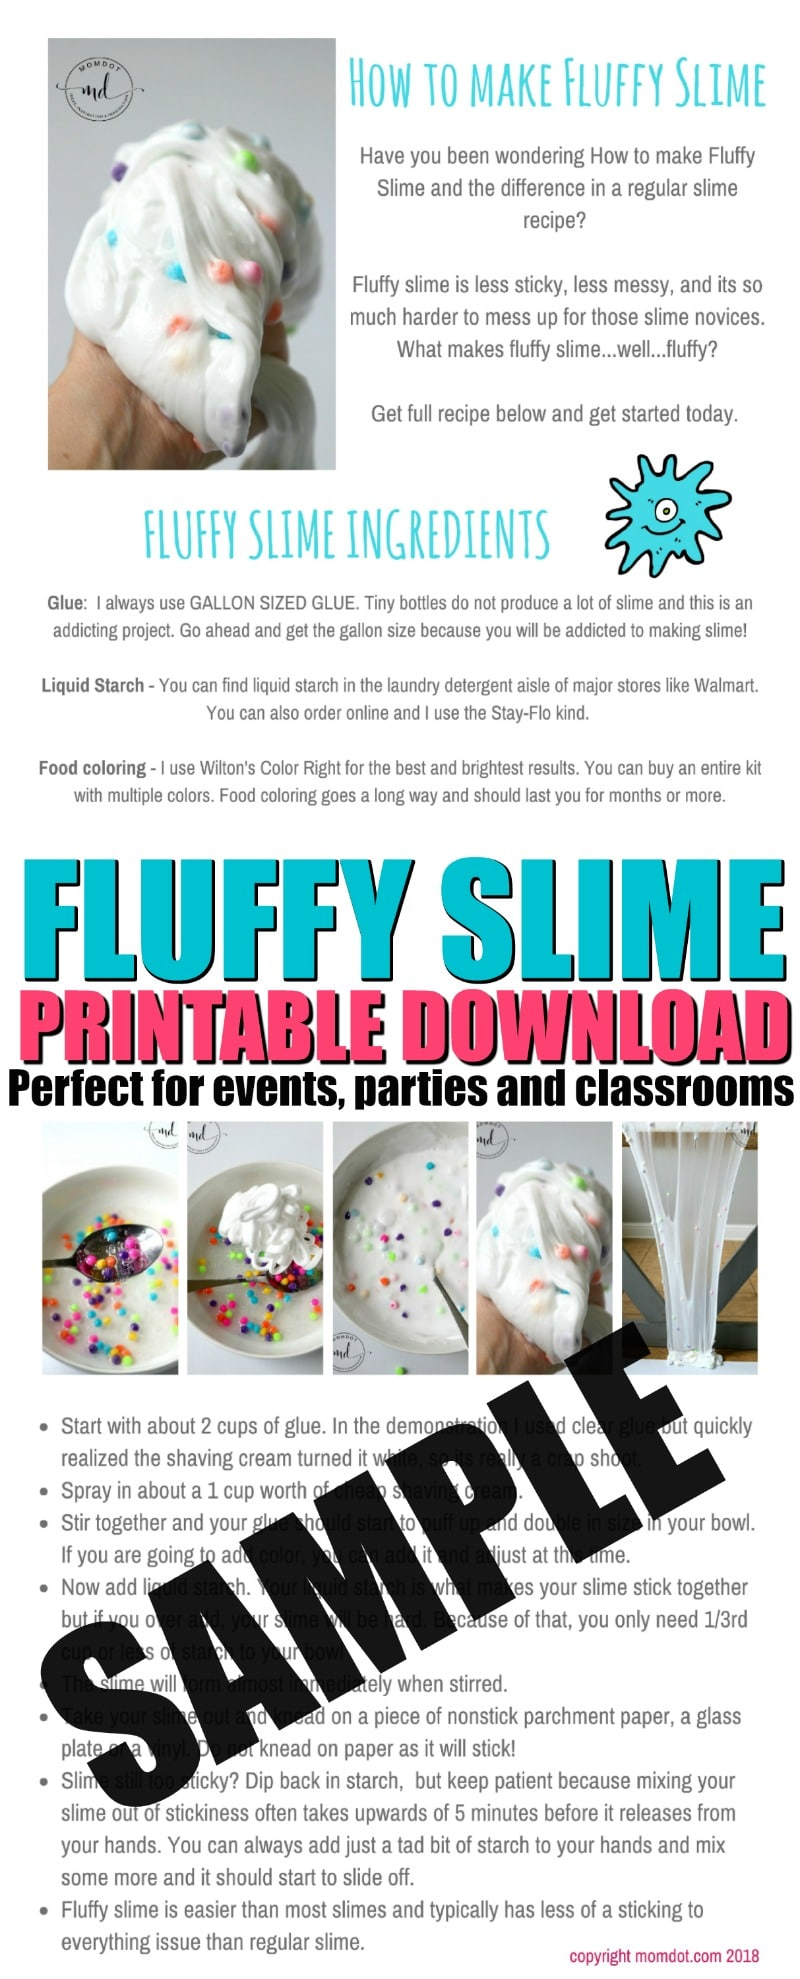 How to make Fluffy Slime with Shaving Cream